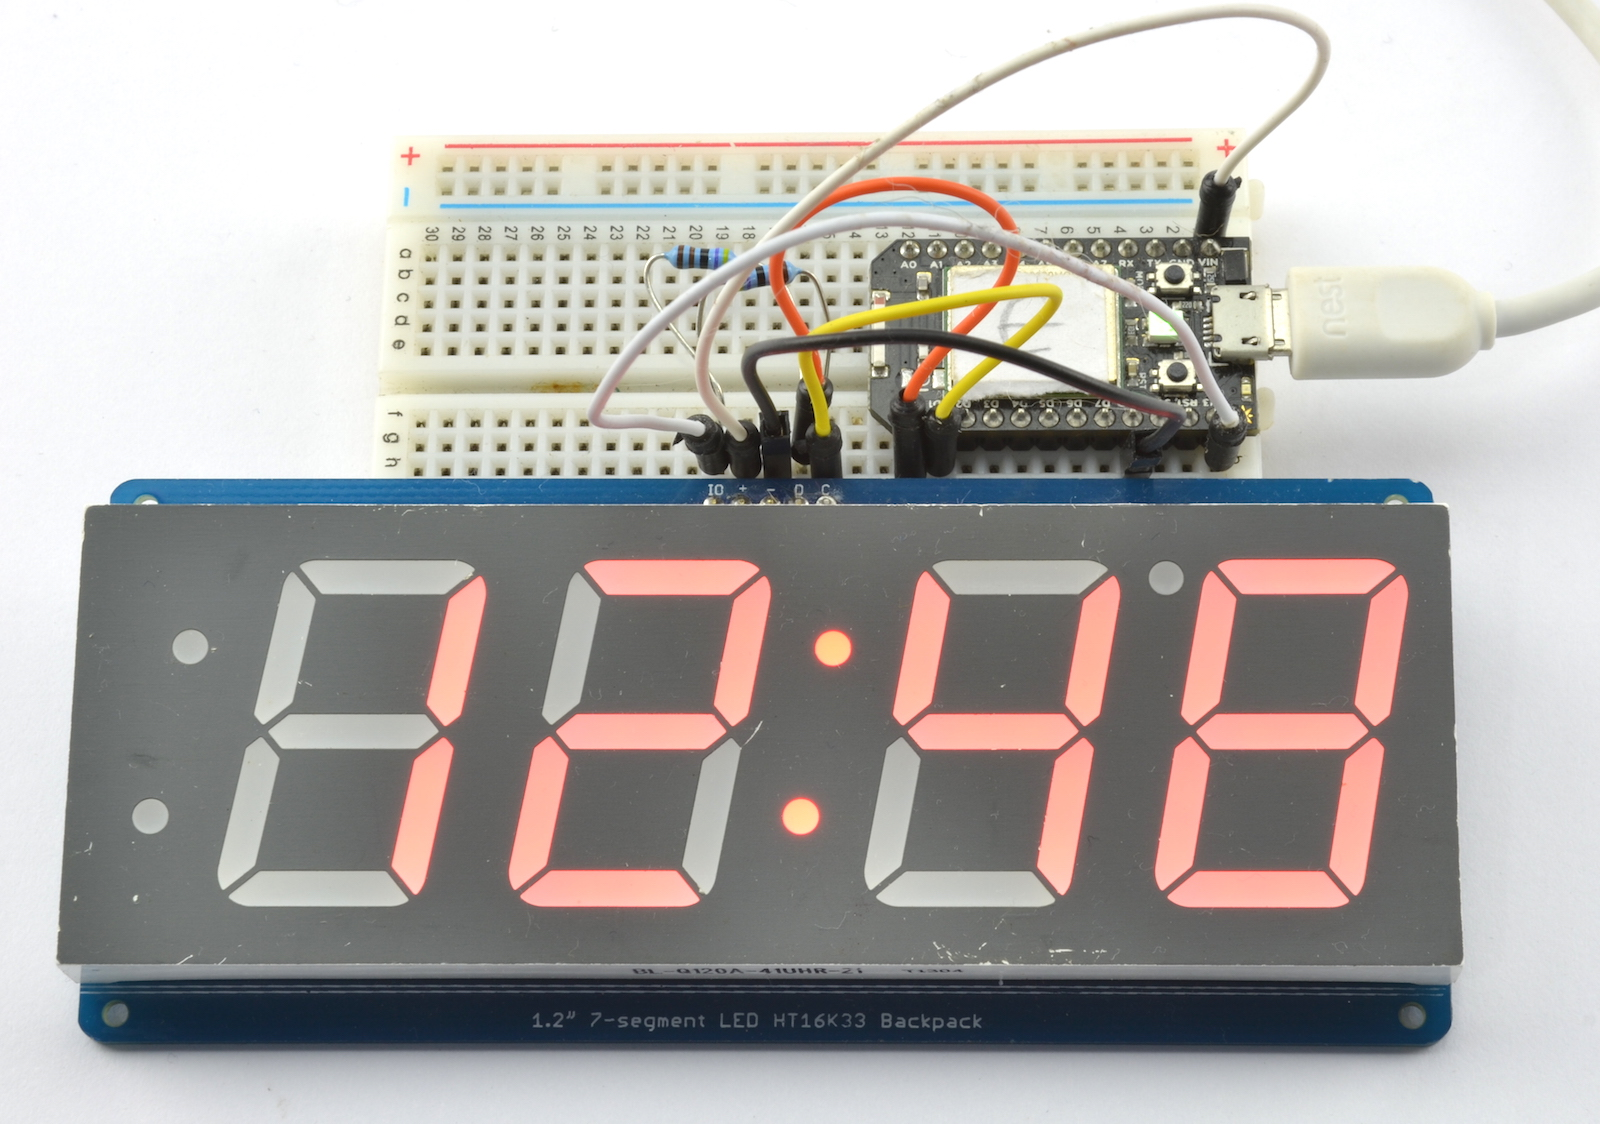 Links Circuit Ideas I Projects Schematics Robotics 12 Volt Led Flasher 555 Http Exlectronixblogspotcom 2012 A Simple Clock Using Spark Core Or Particle Photon